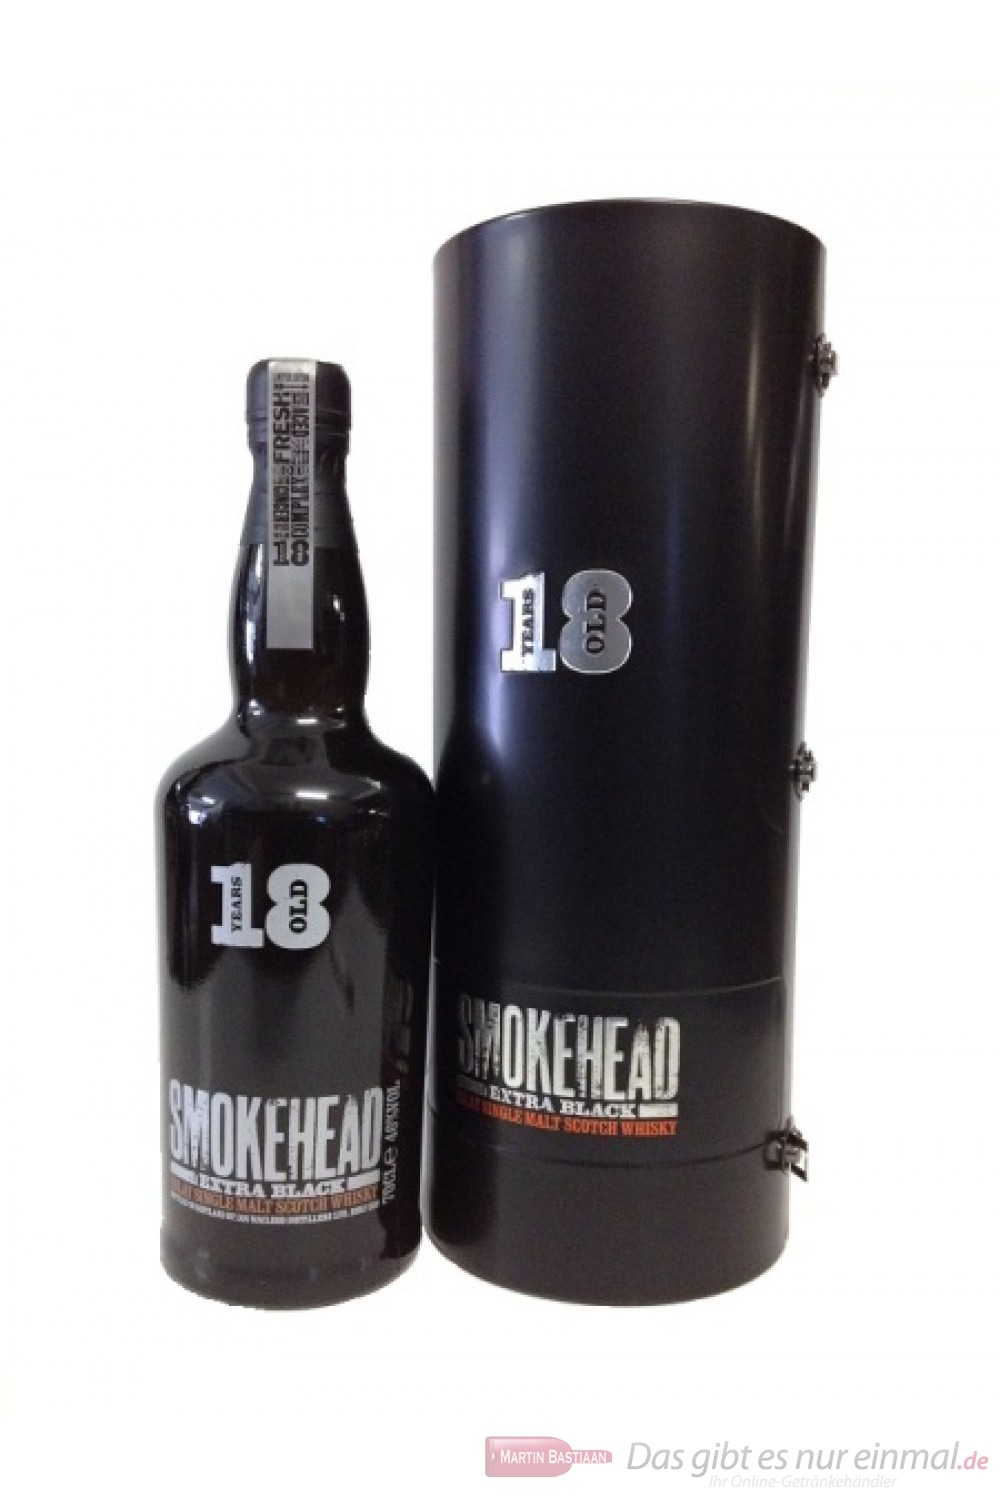 Smokehead 18 Years Extra Black